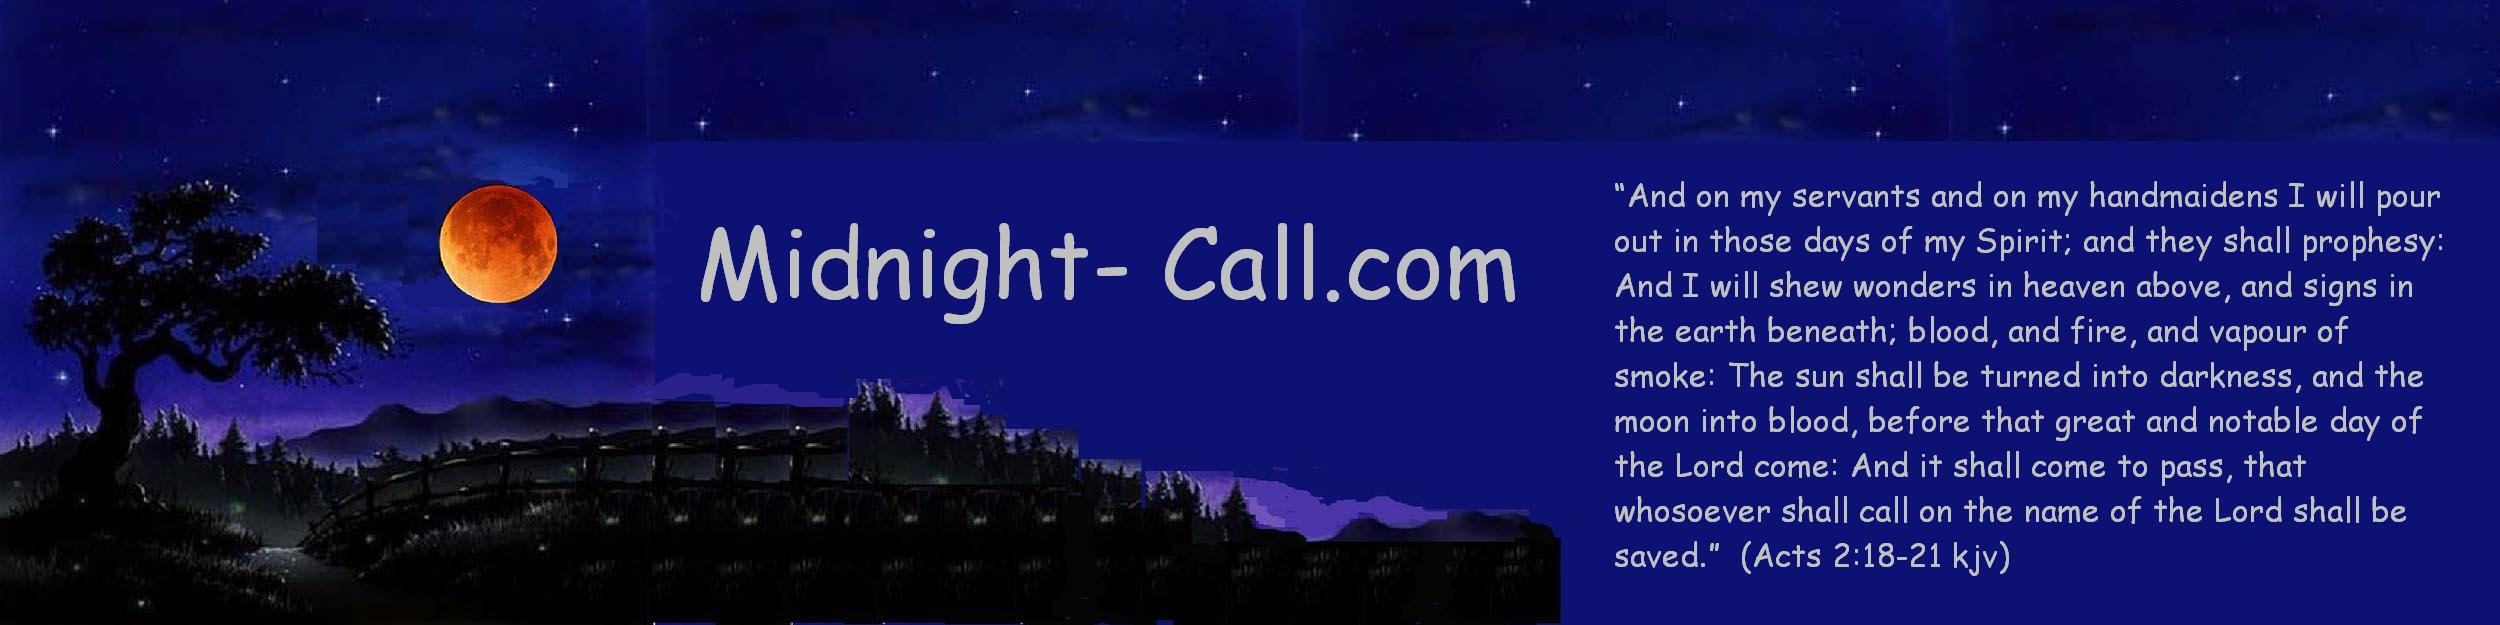 Midnight-Call.com